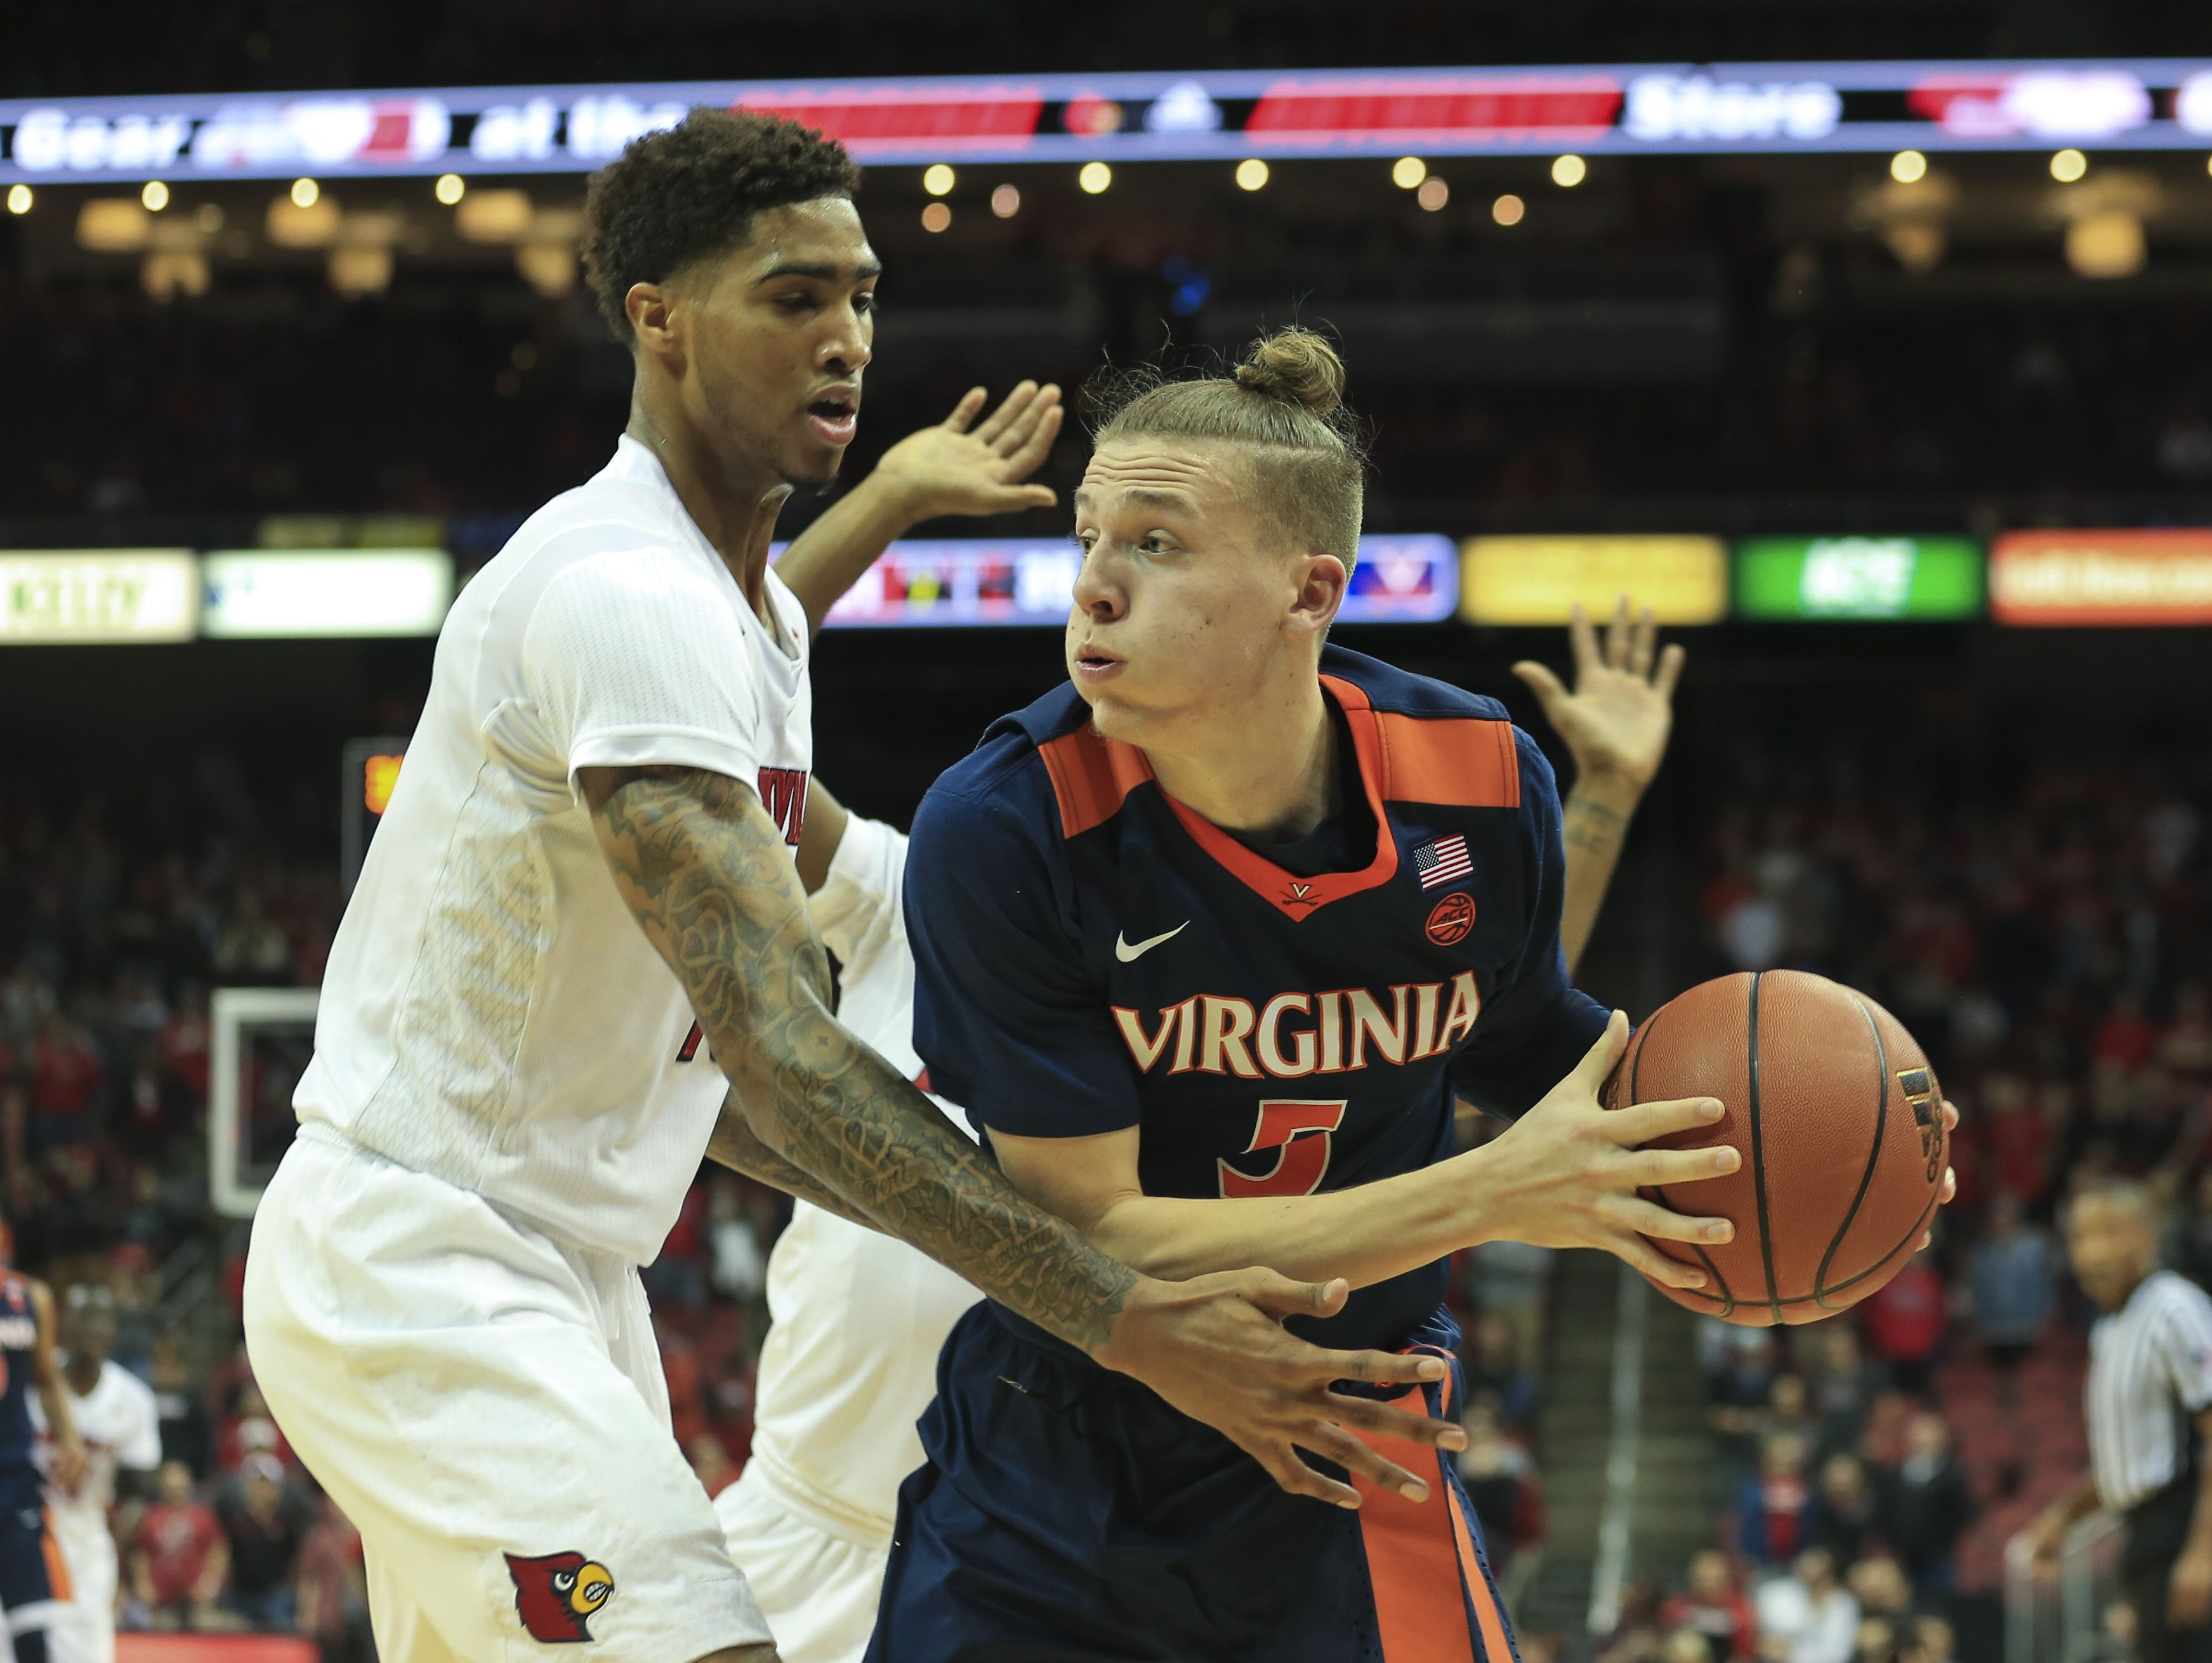 Virginia's Kyle Guy looks to pass as he's pressured by Louisville's Ray Spalding in the Cavaliers' win over the Cards 61-53 Wednesday night.